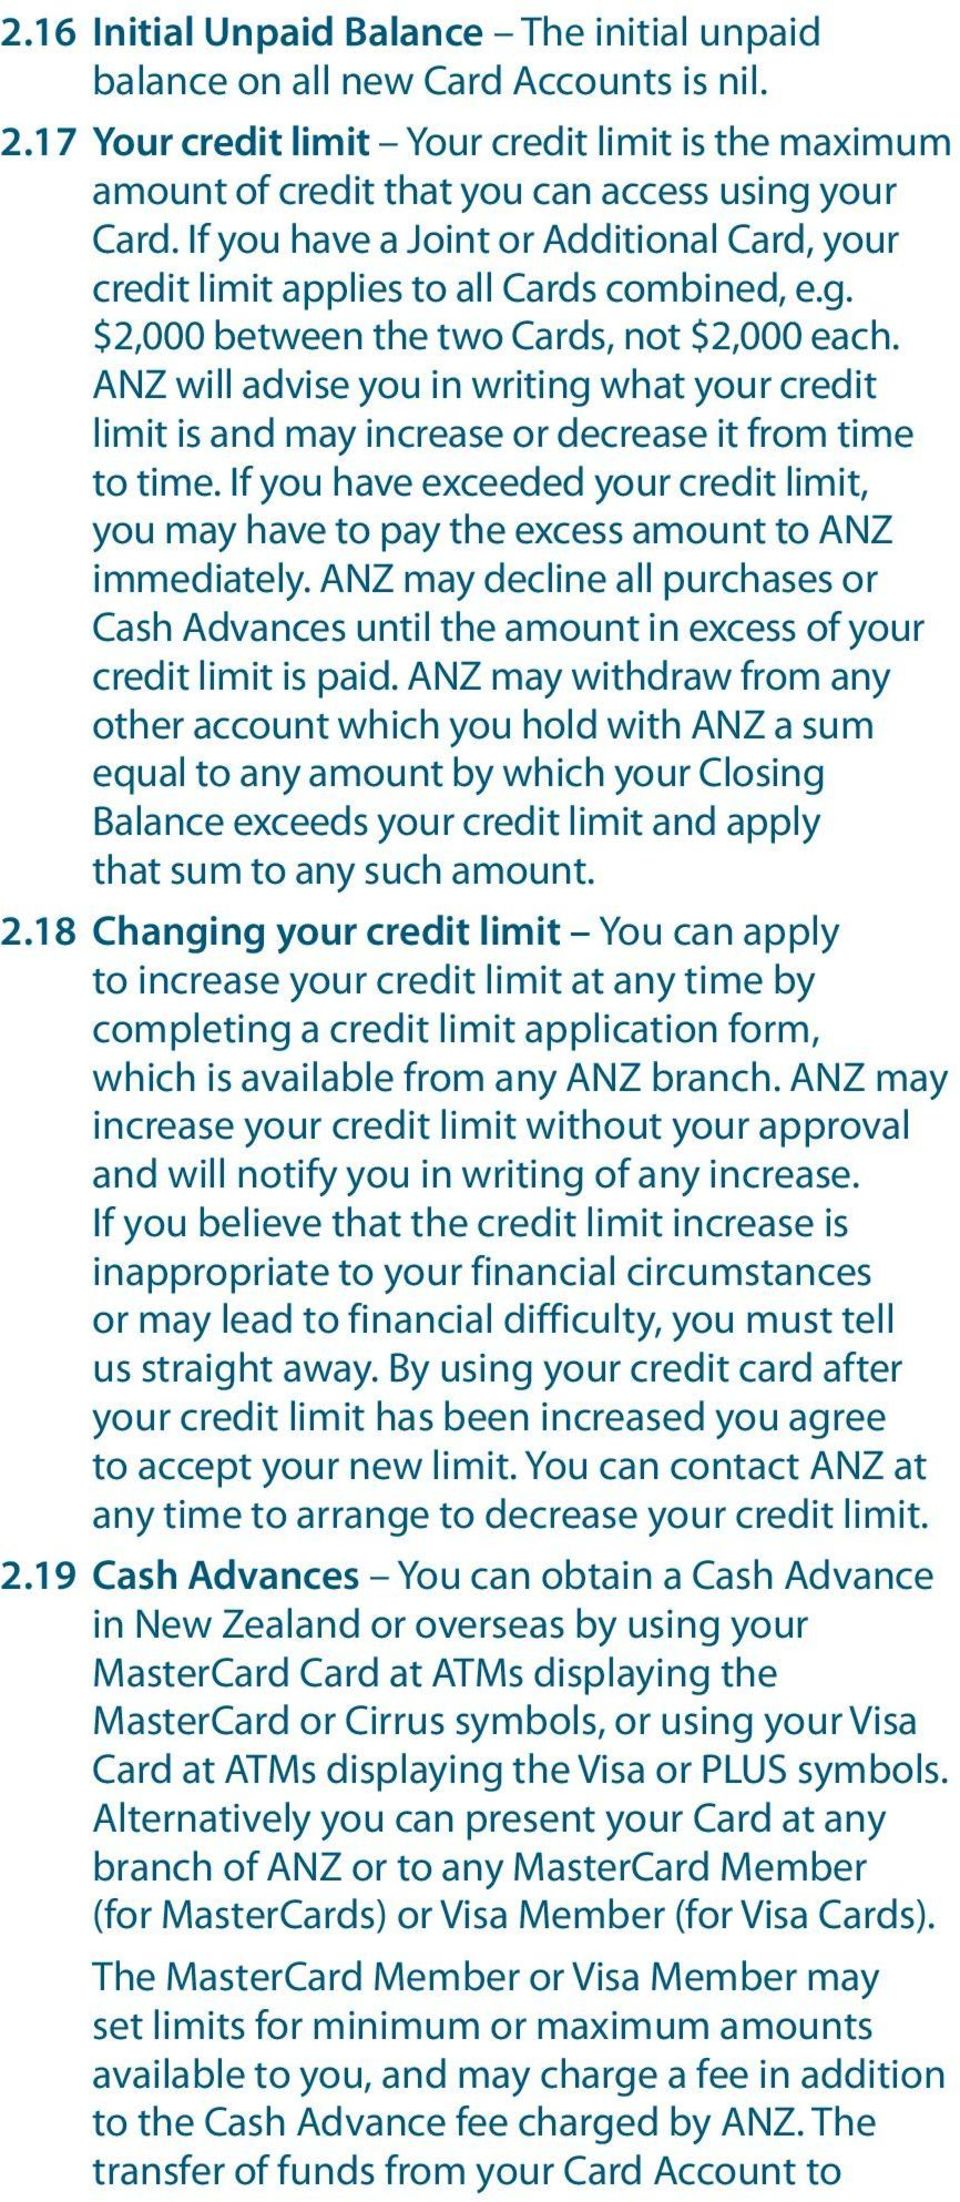 ANZ will advise you in writing what your credit limit is and may increase or decrease it from time to time.